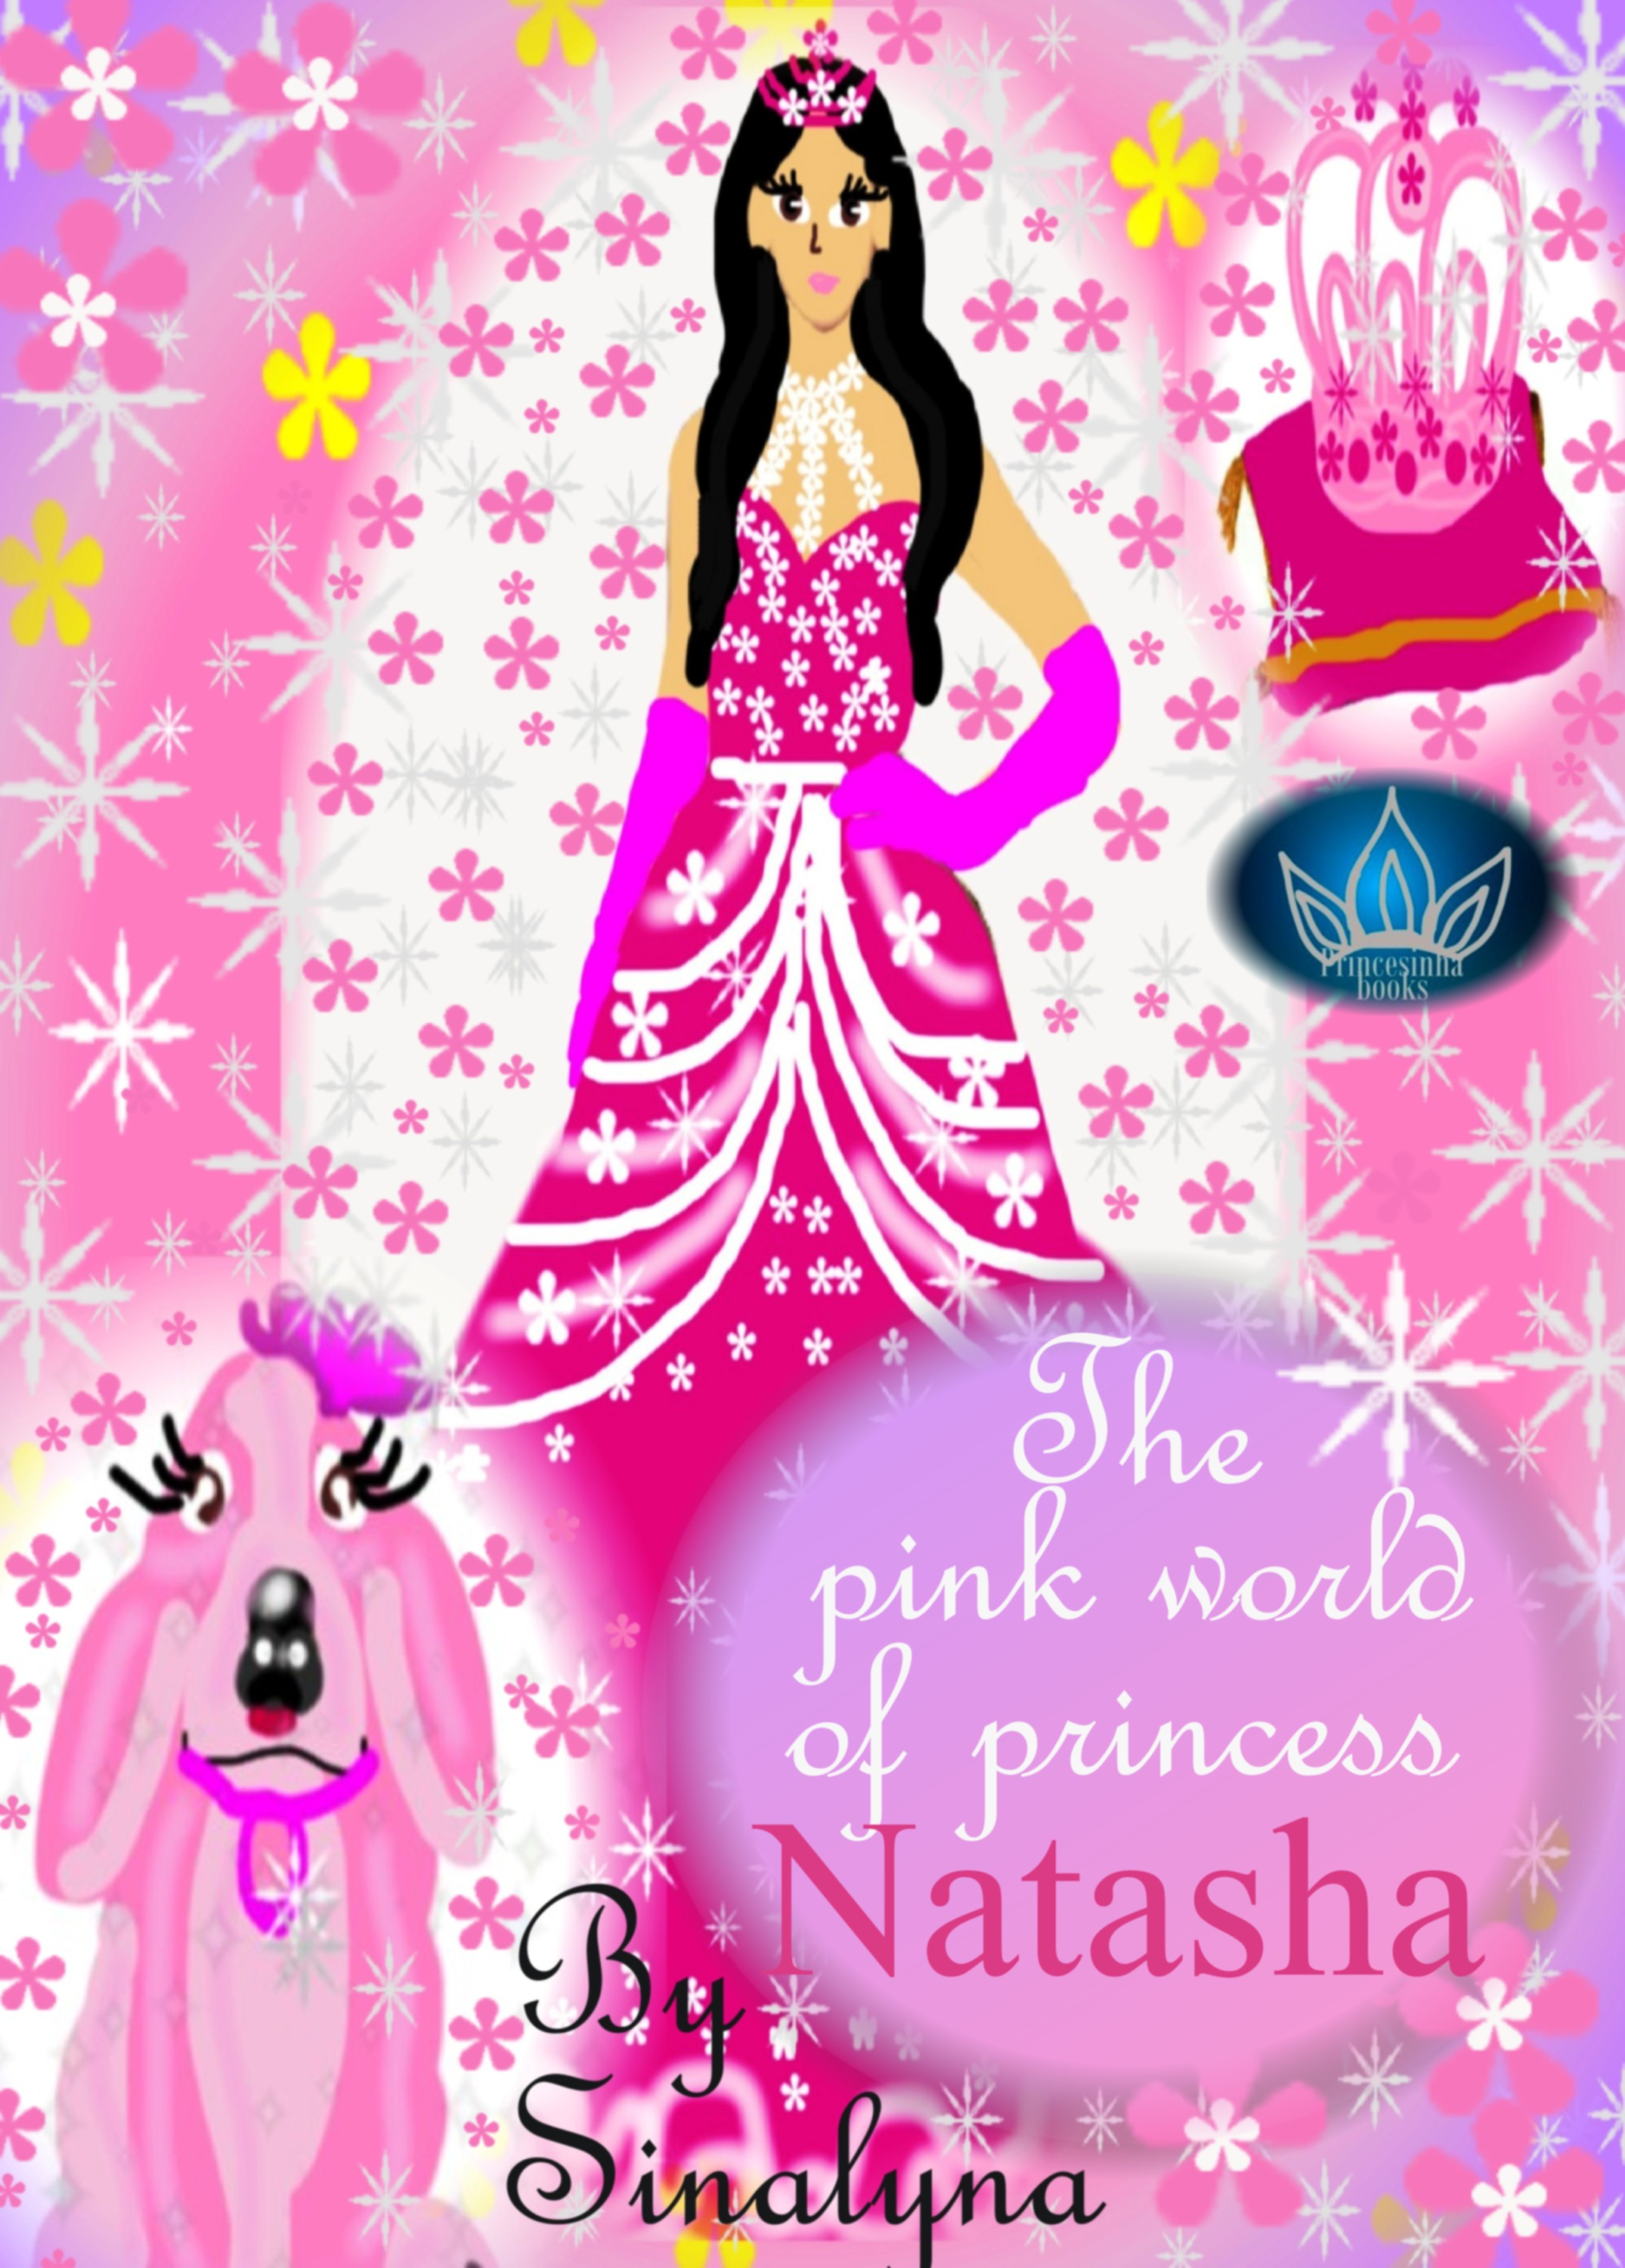 The pink world of Princess Natasha